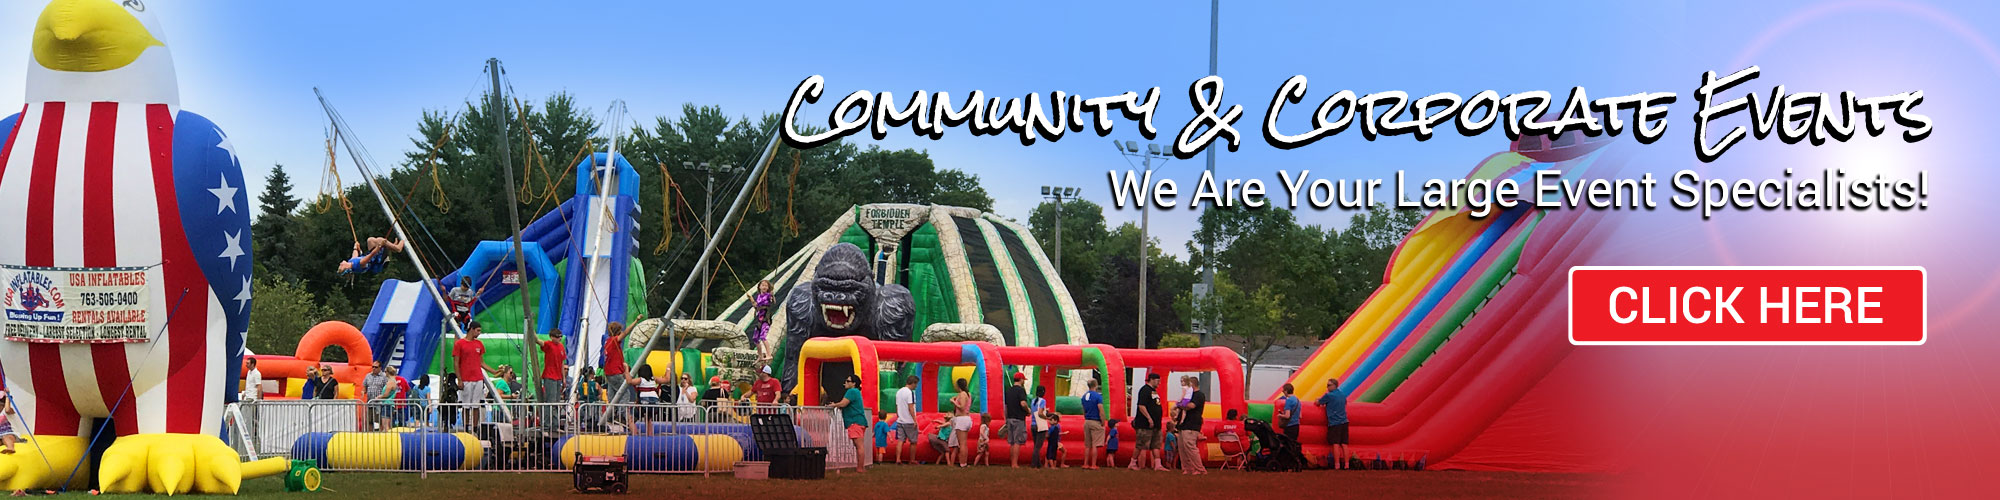 Community & Corporate Events